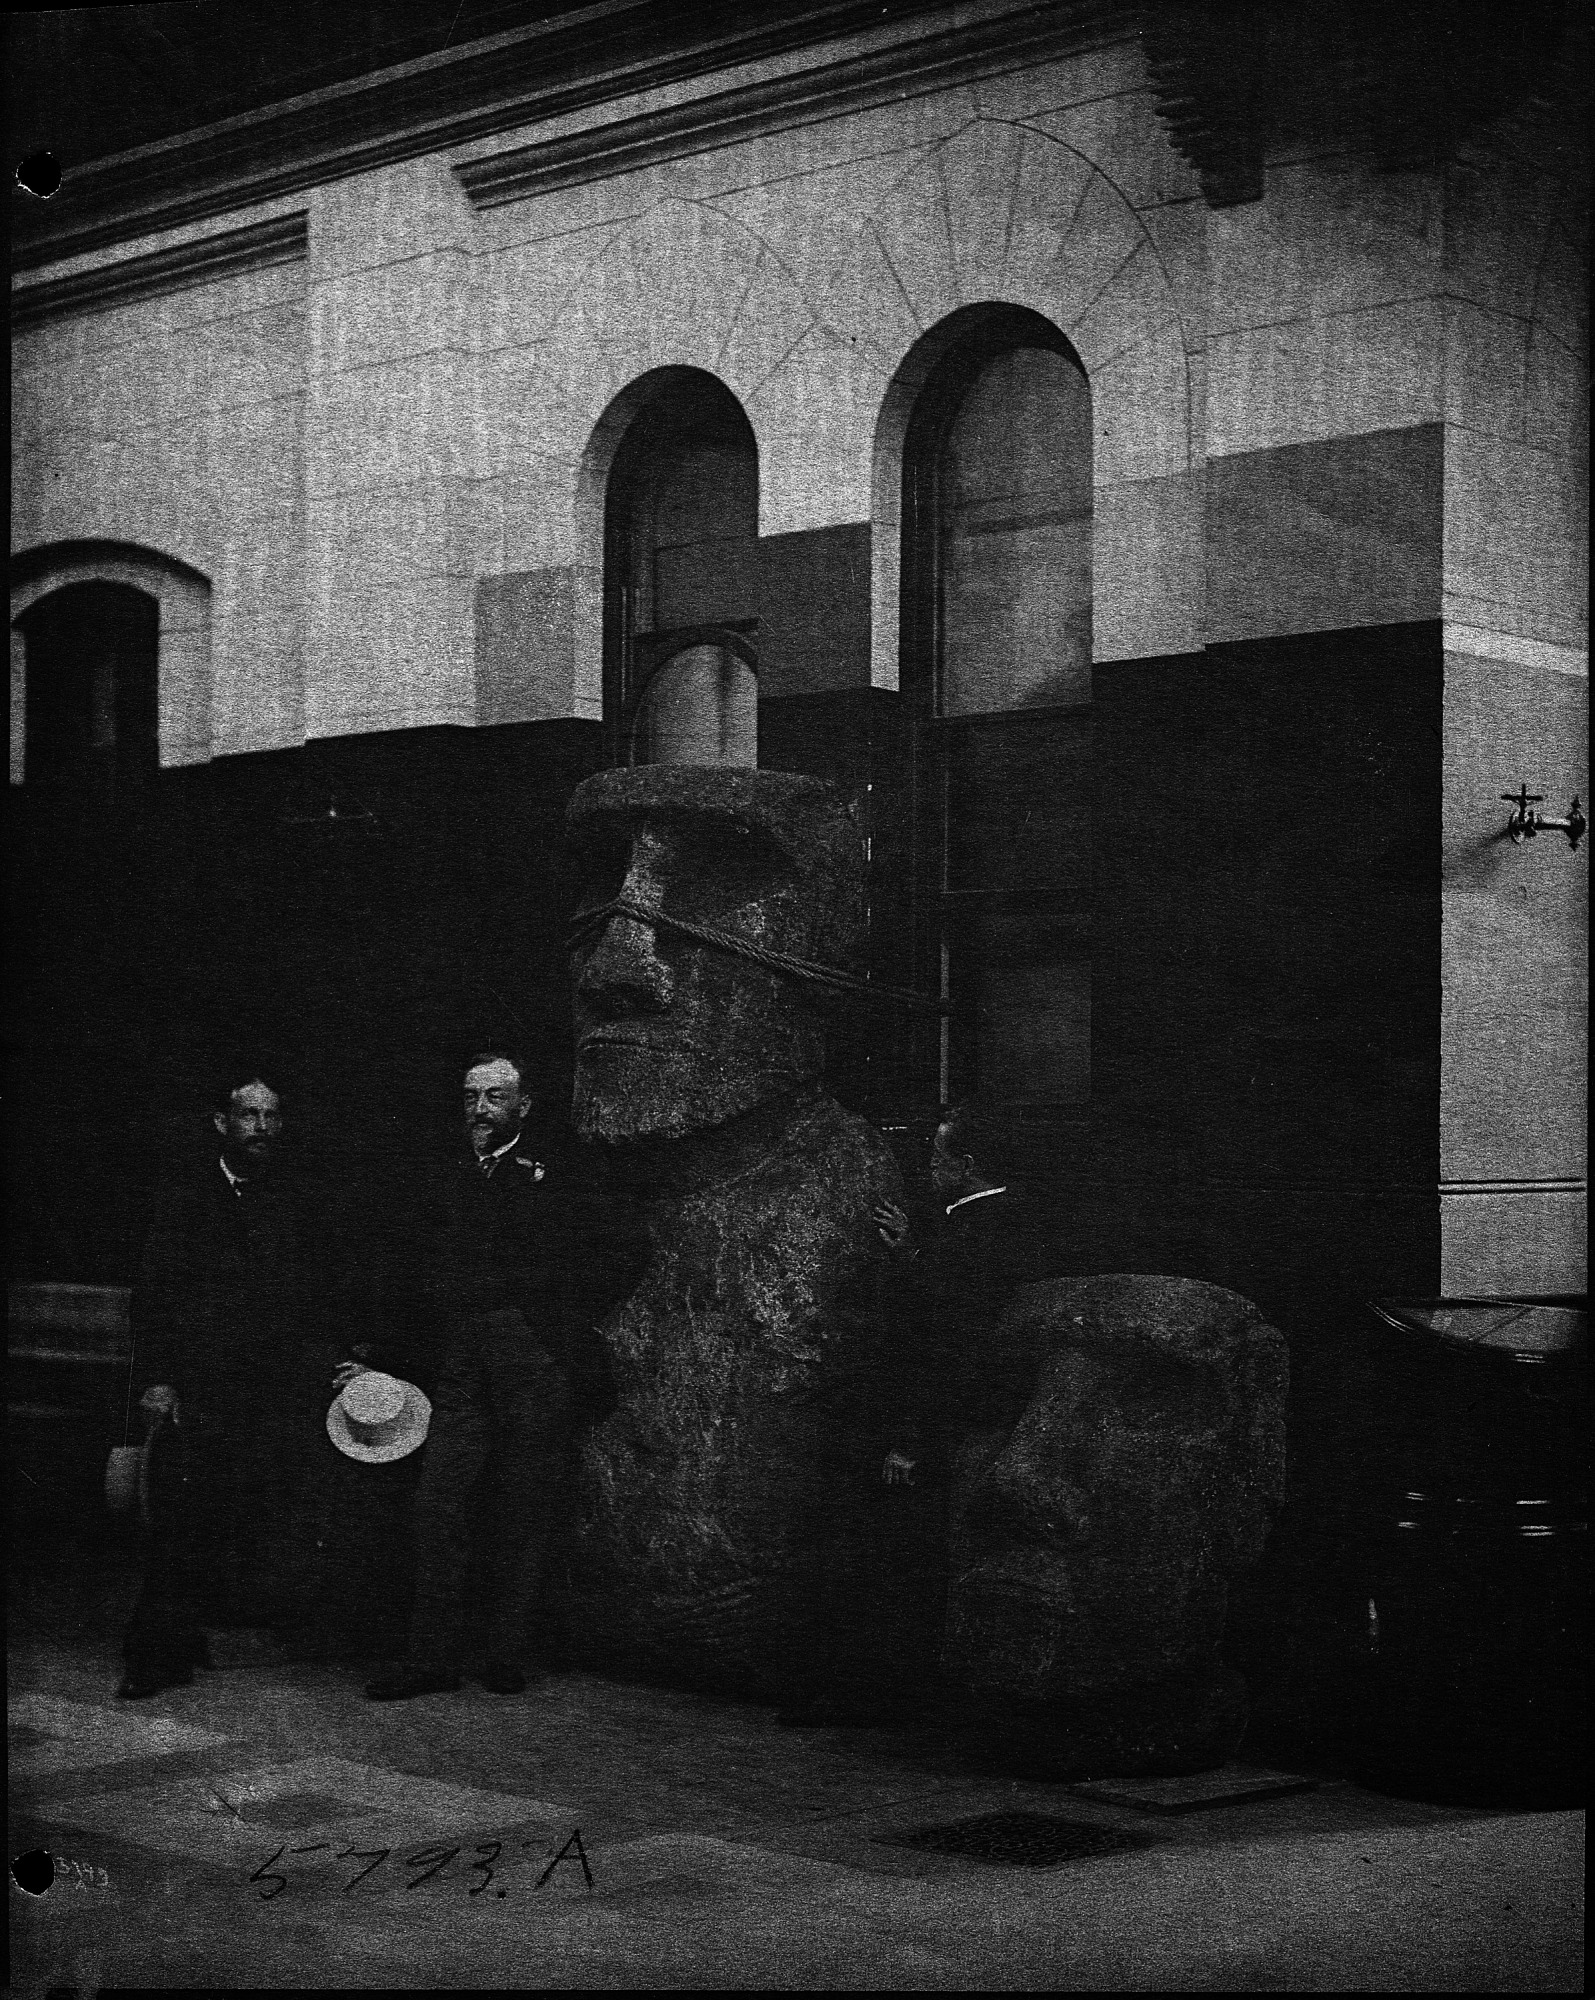 Samuel P. Langley with the Easter Island Statues